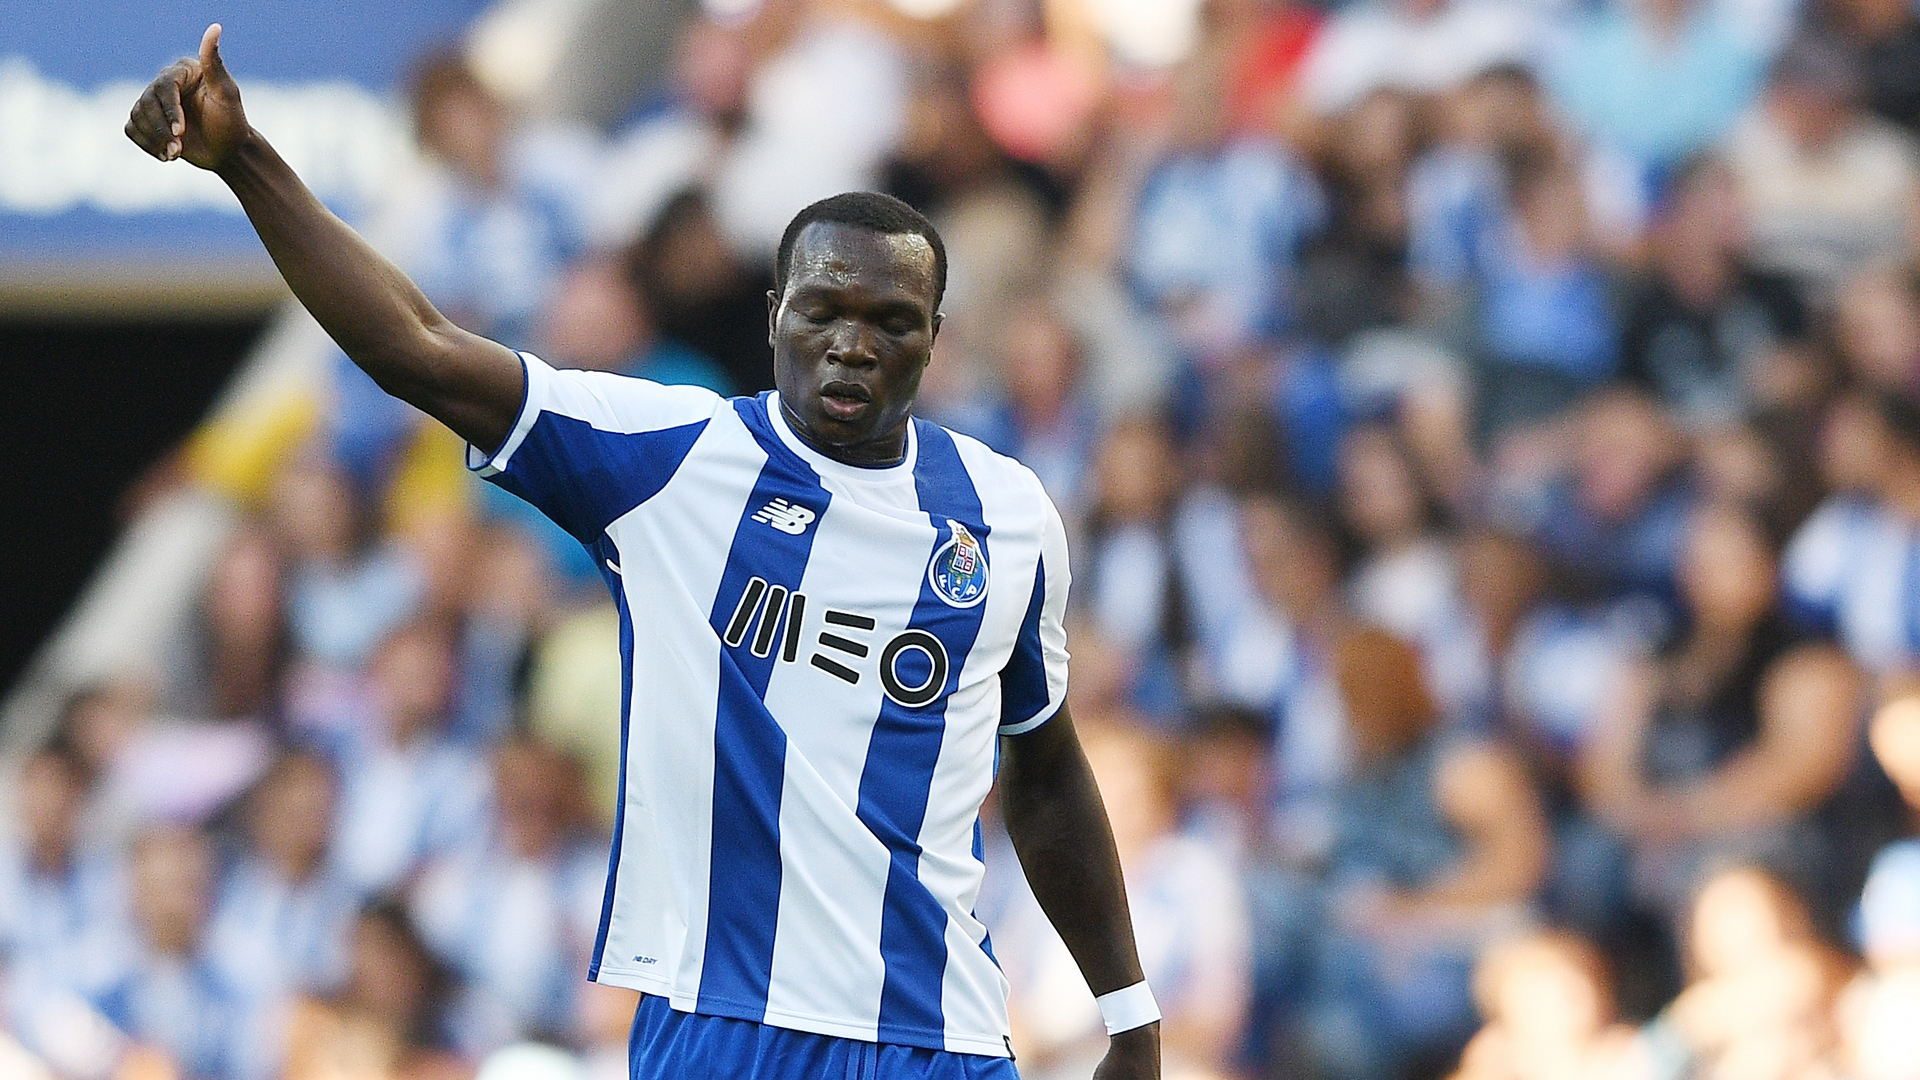 Vincent Aboubakar prolonge jusqu'en 2021 — Porto